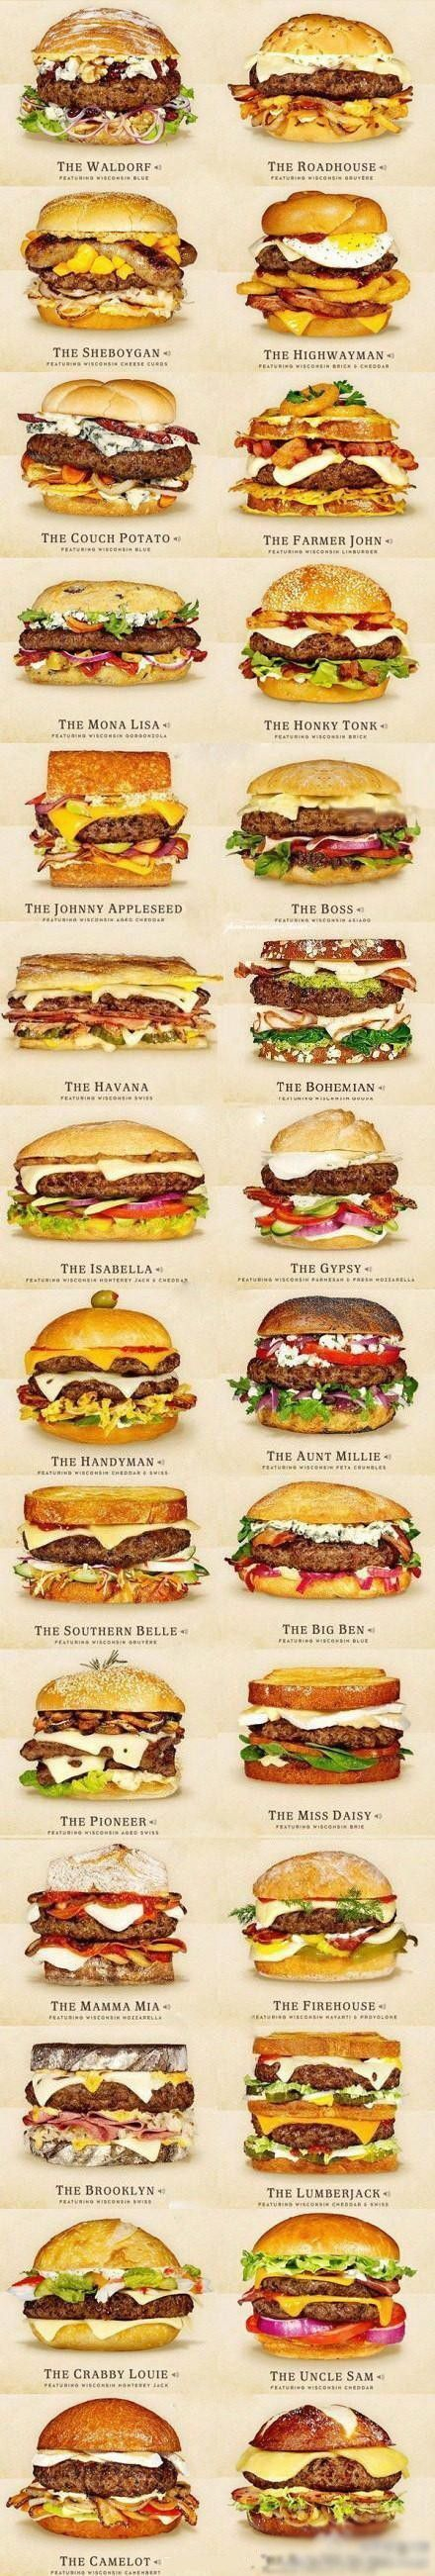 The End All Guide to Burgers! Pinned by Frosted Events- Best Burger Recipes- Get Your Grill On!